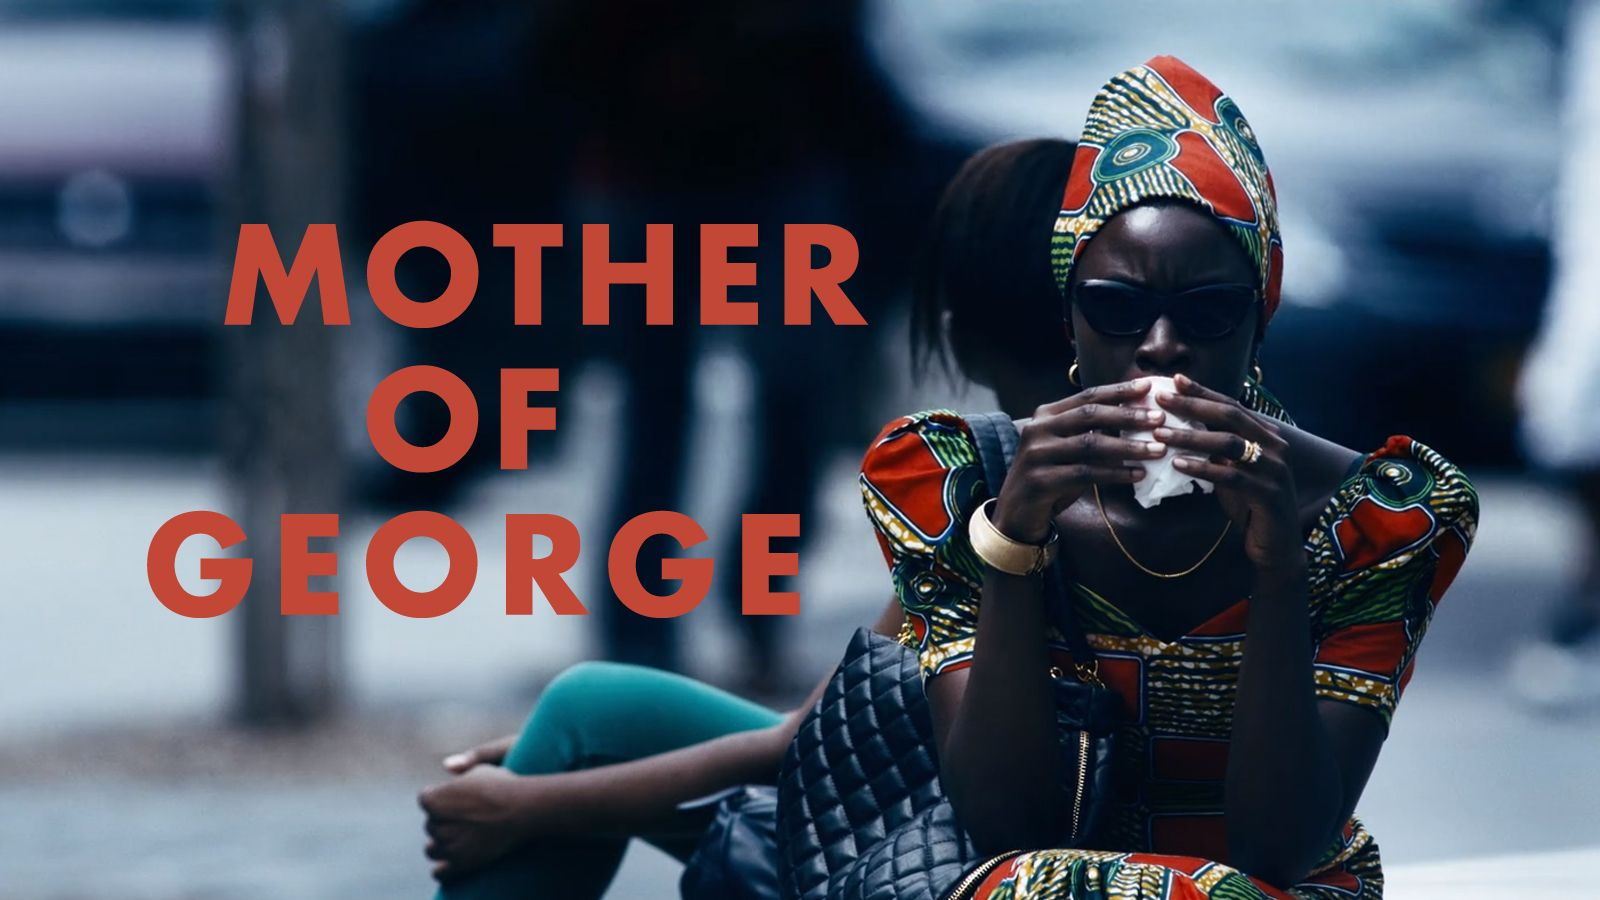 Mother Of George 2013 Andrew Dosunmu In 2020 Feminist Movies Tv Theme Songs George